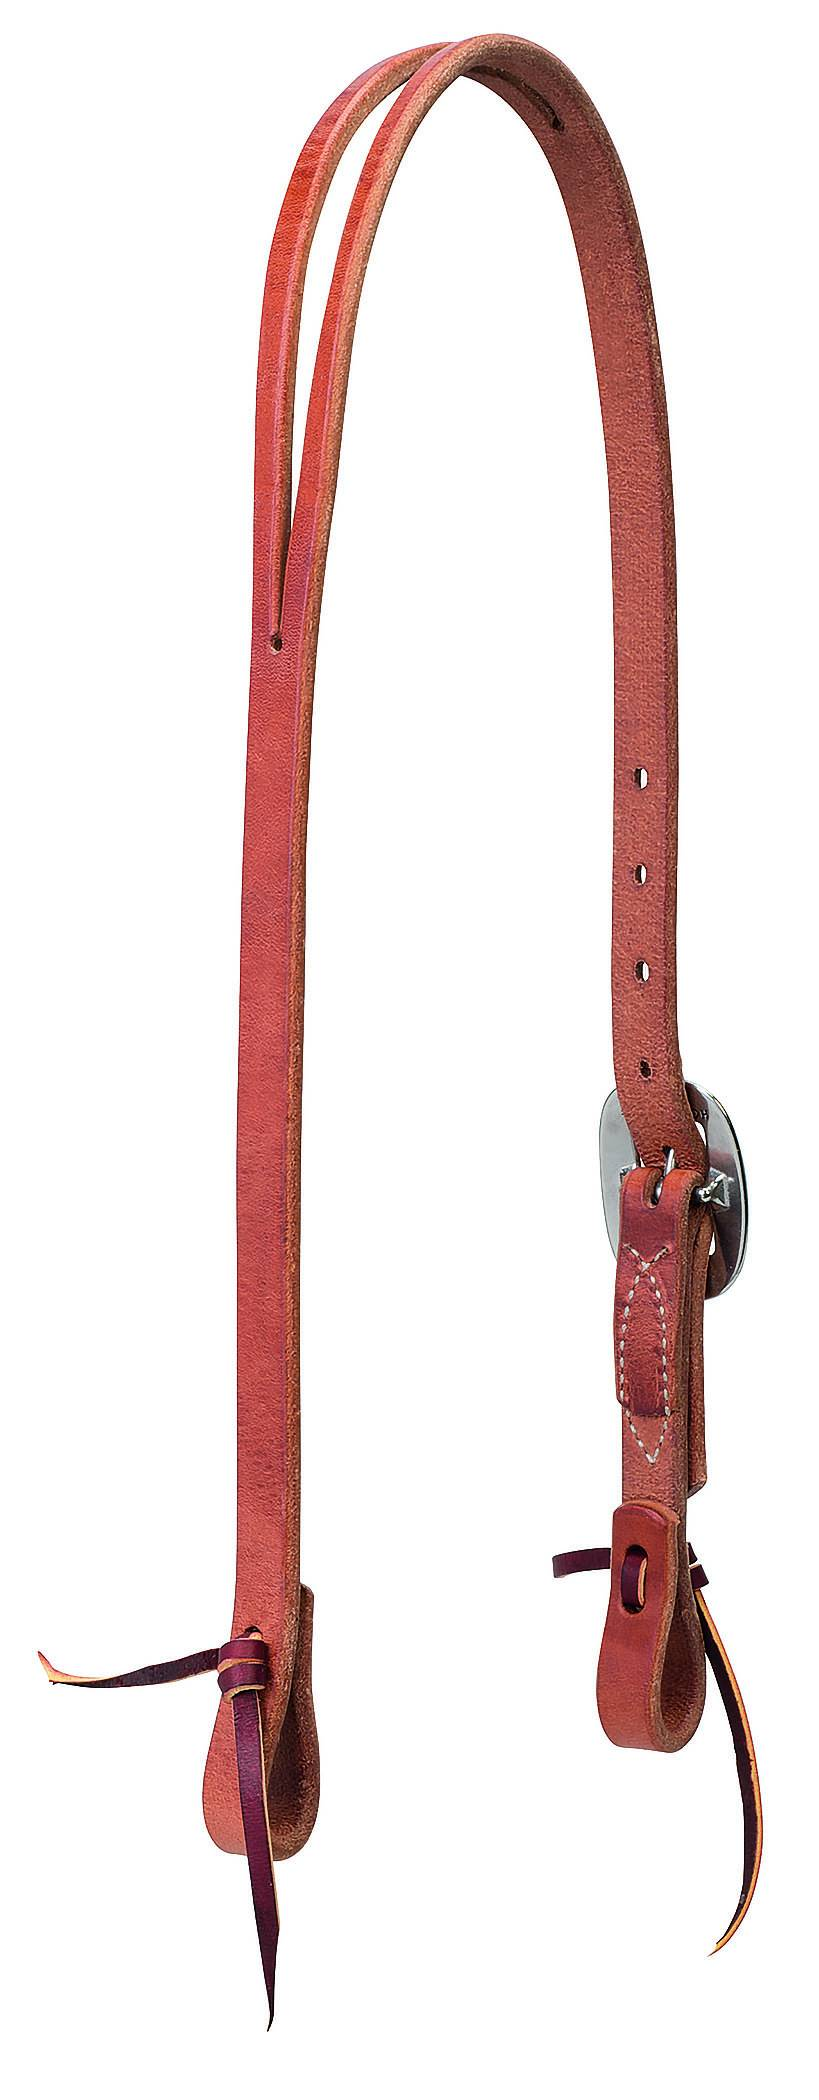 Weaver Buttered Premium Harness Leather Split Ear Headstall - Floral Hardware